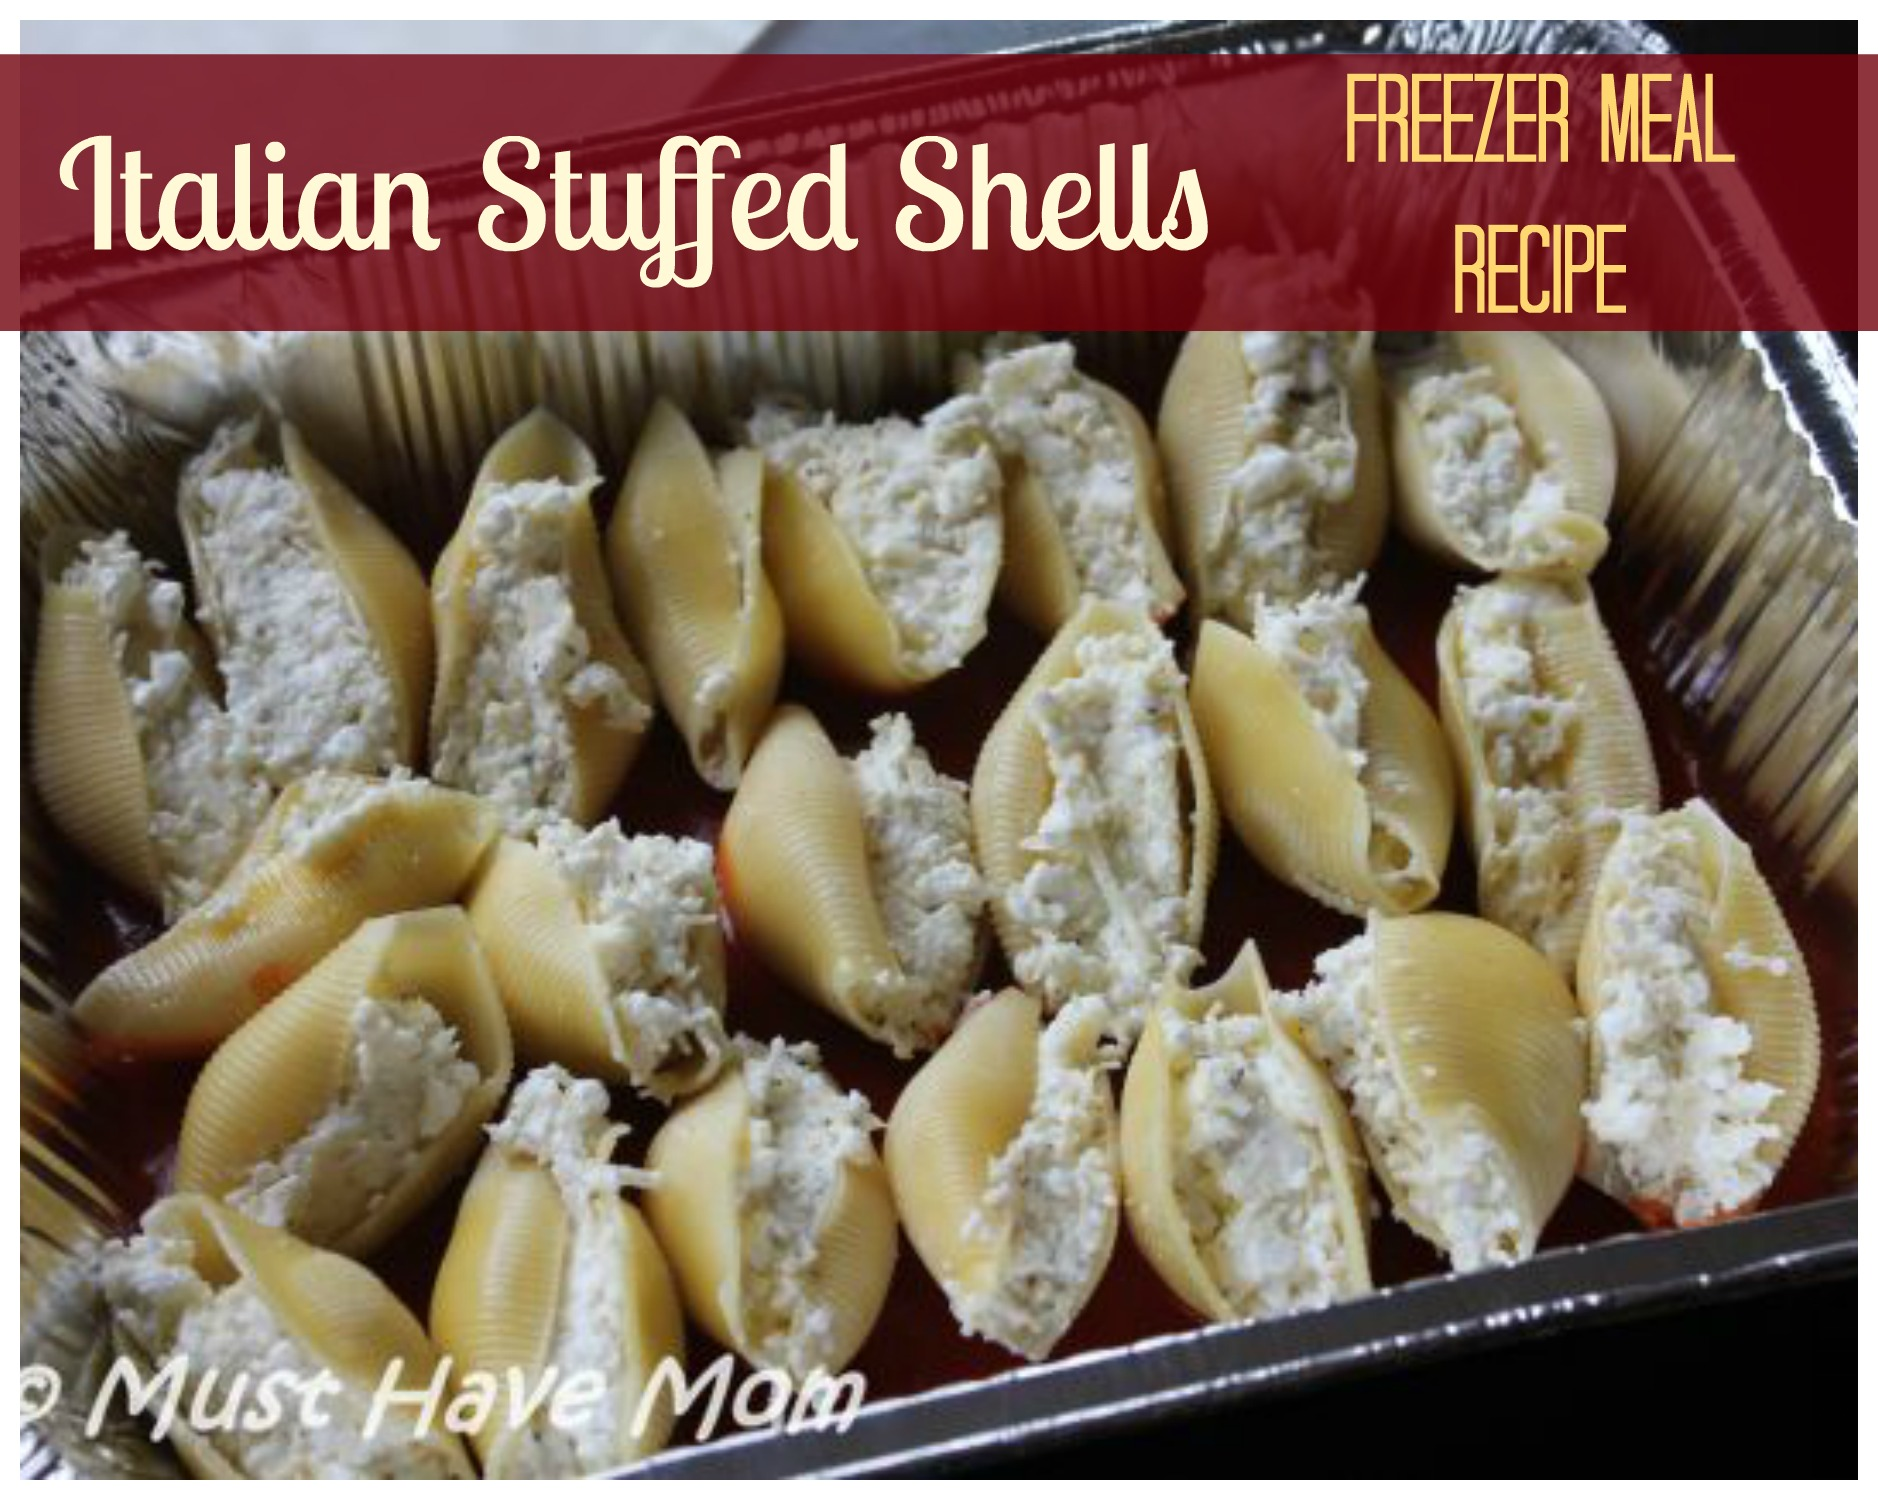 Italian Stuffed Shells Freezer Meal Recipe